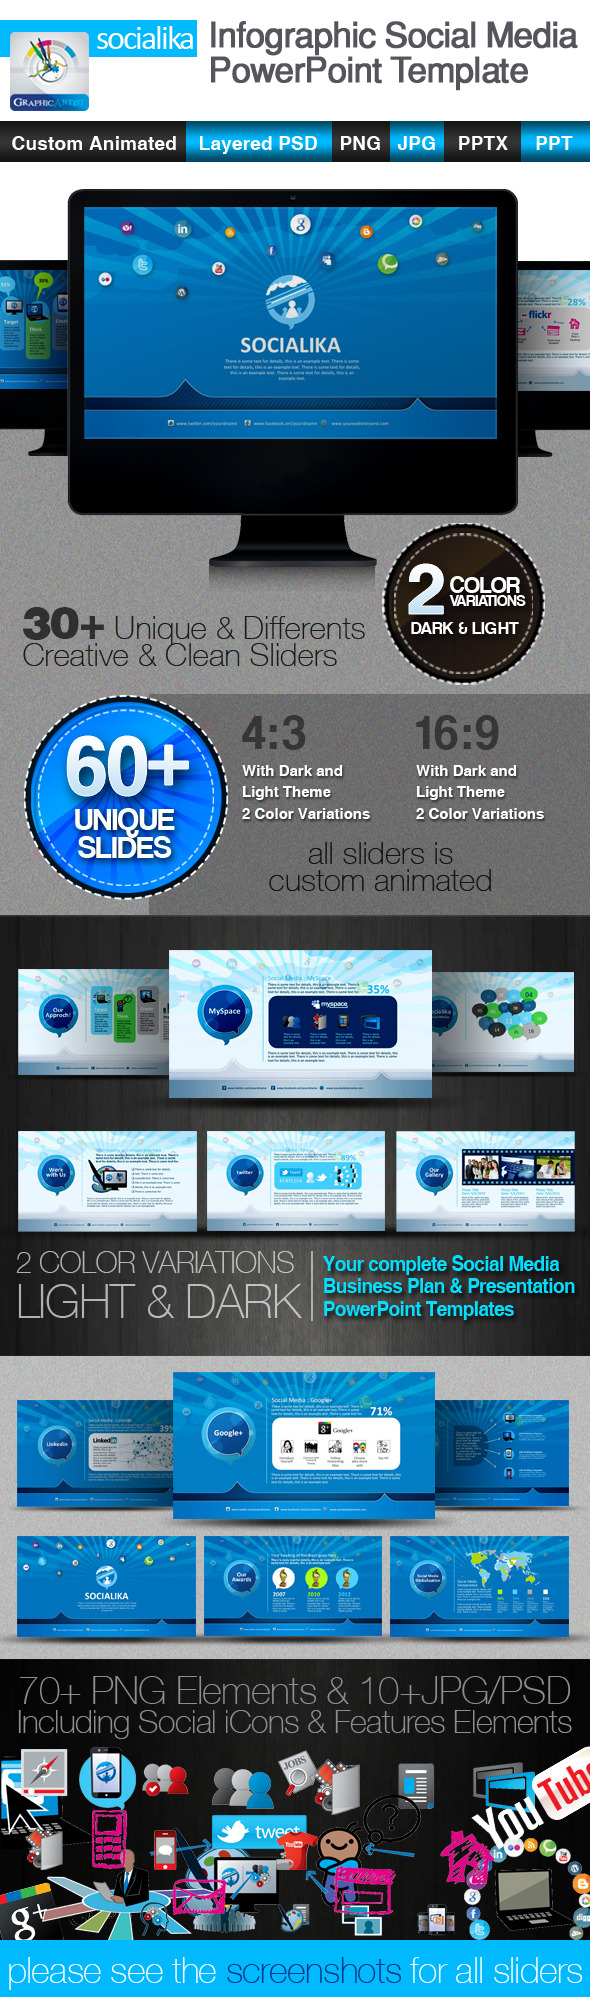 Socialika Infographic Social Media PowerPoint - Business PowerPoint Templates